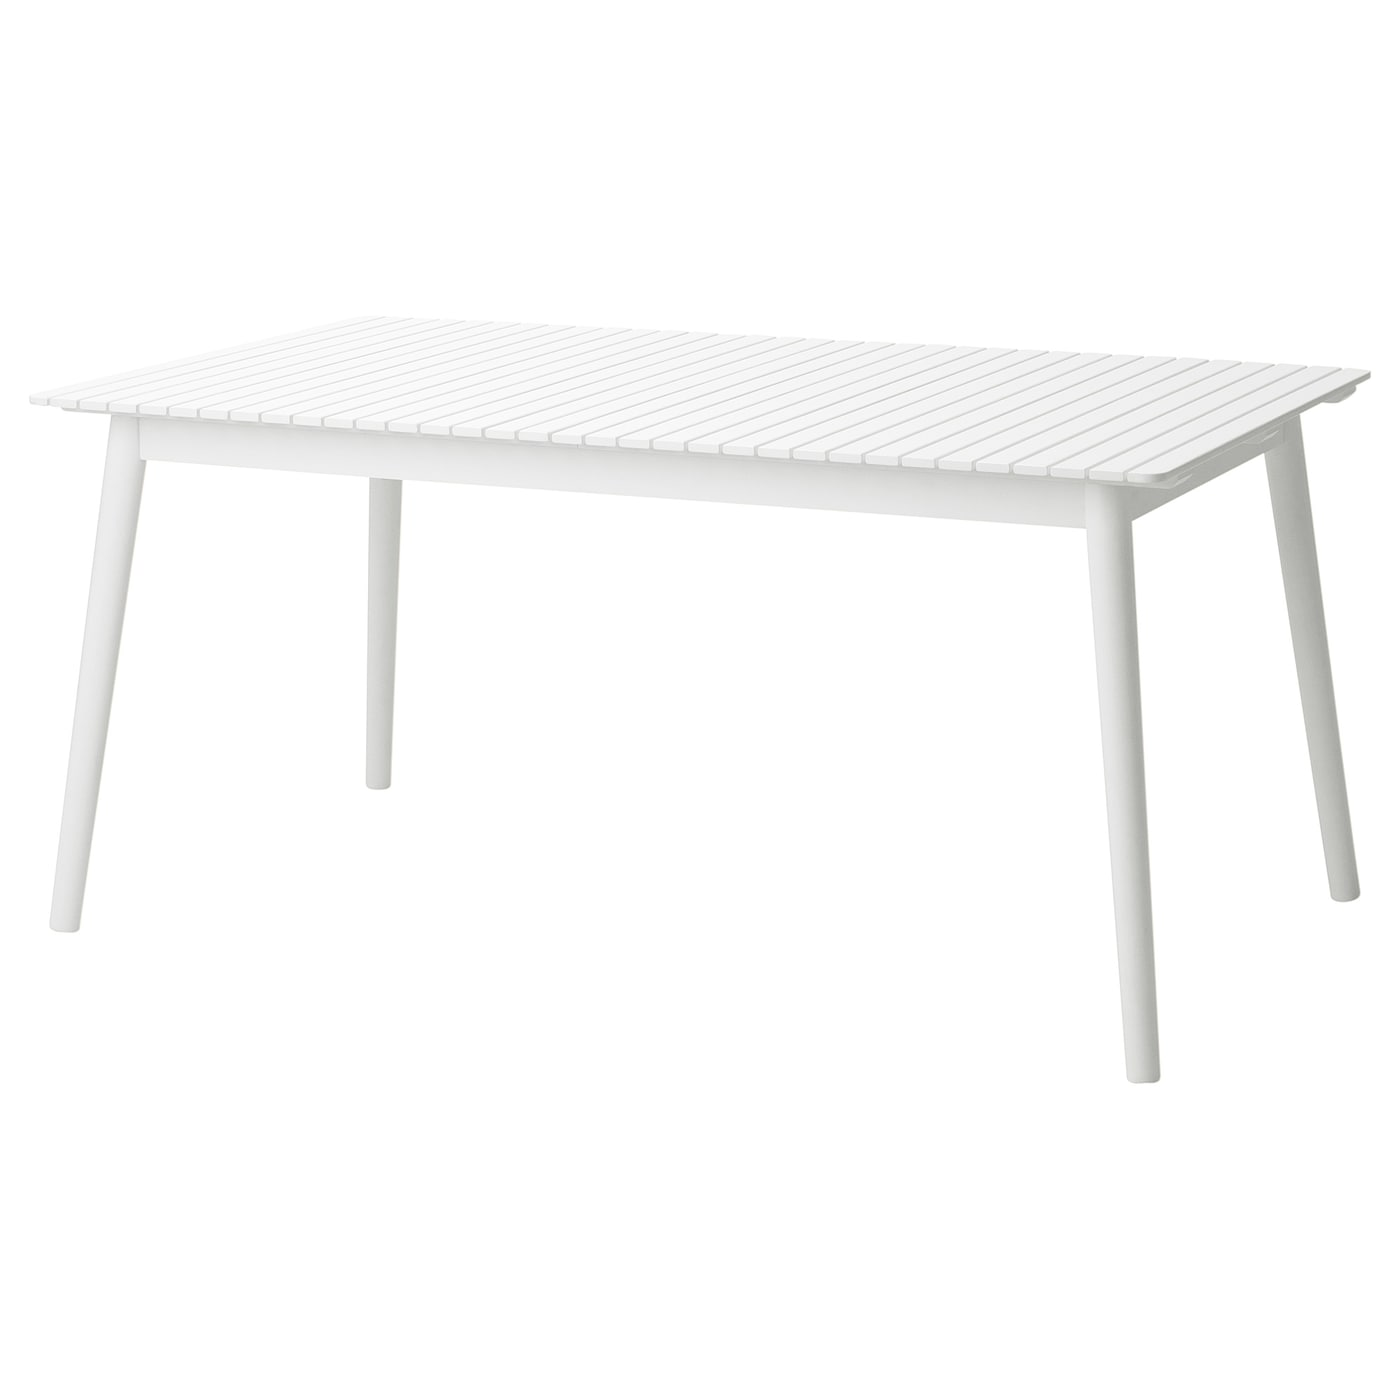 IKEA HATTHOLMEN extendable table, outdoor 1 extension leaf included.